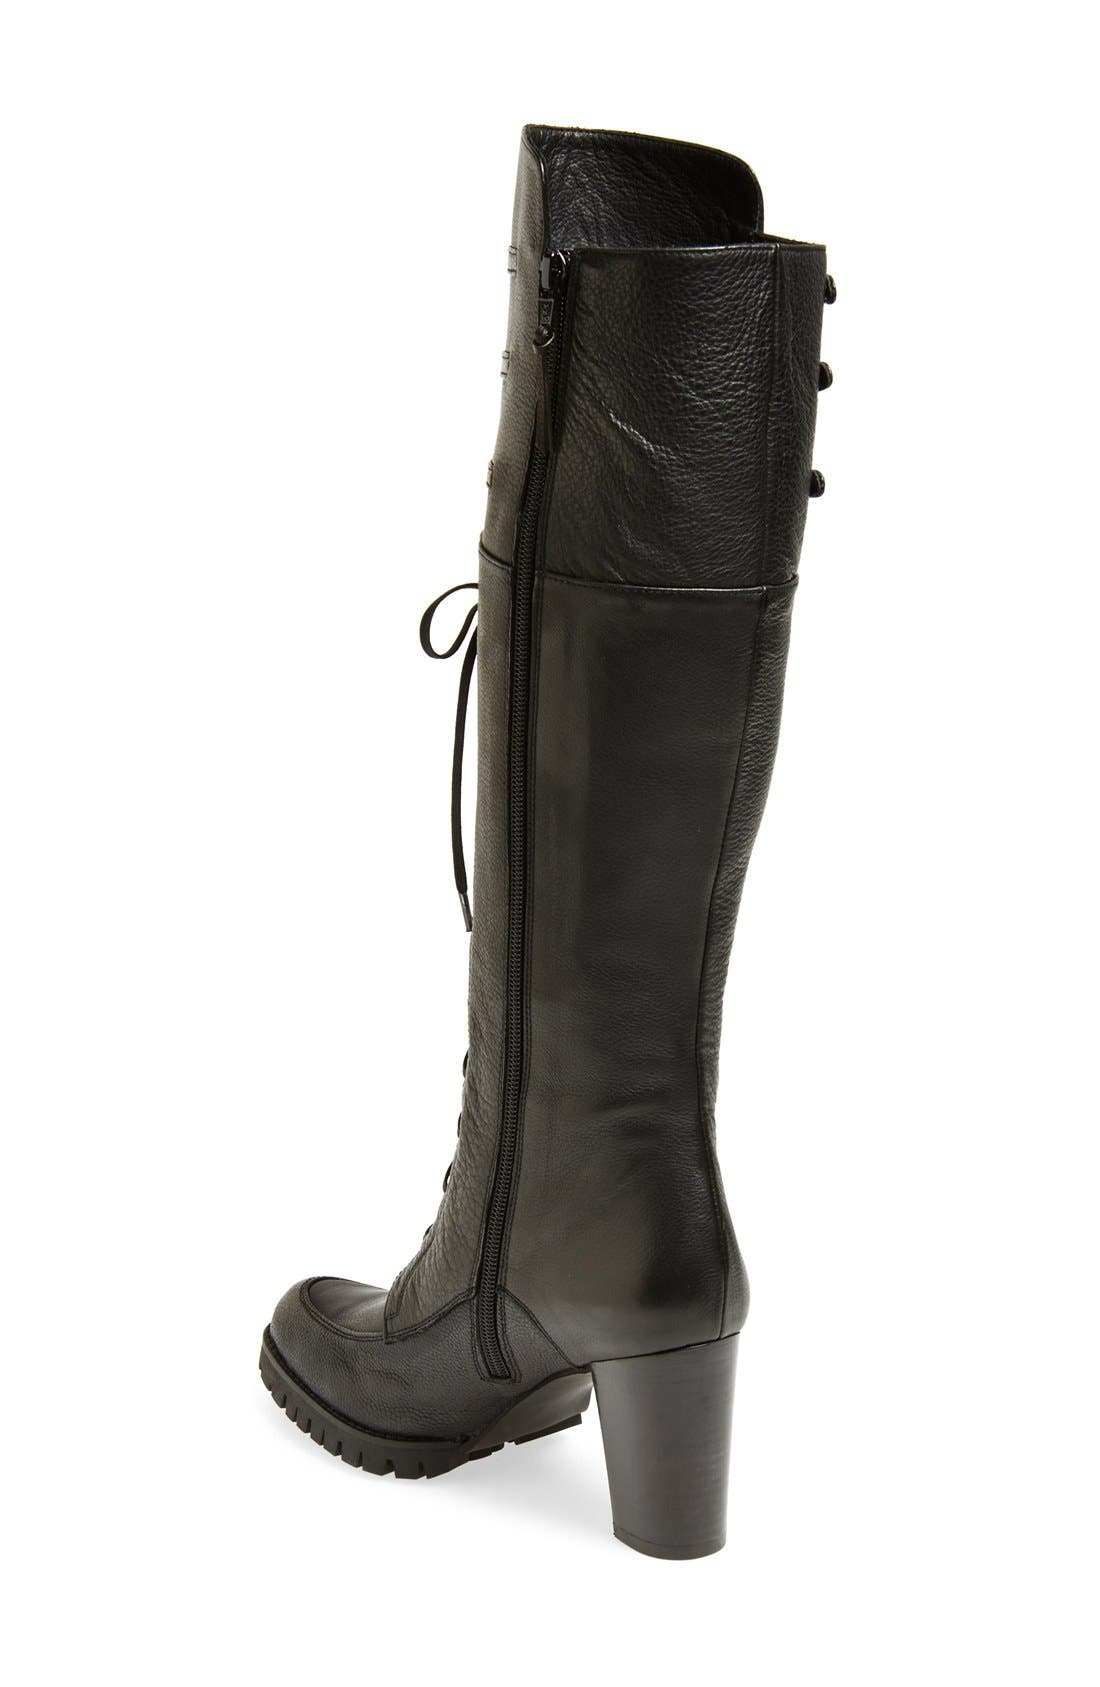 STUART WEITZMAN,                             'Soldier' Lace-Up Military Boot,                             Alternate thumbnail 2, color,                             001